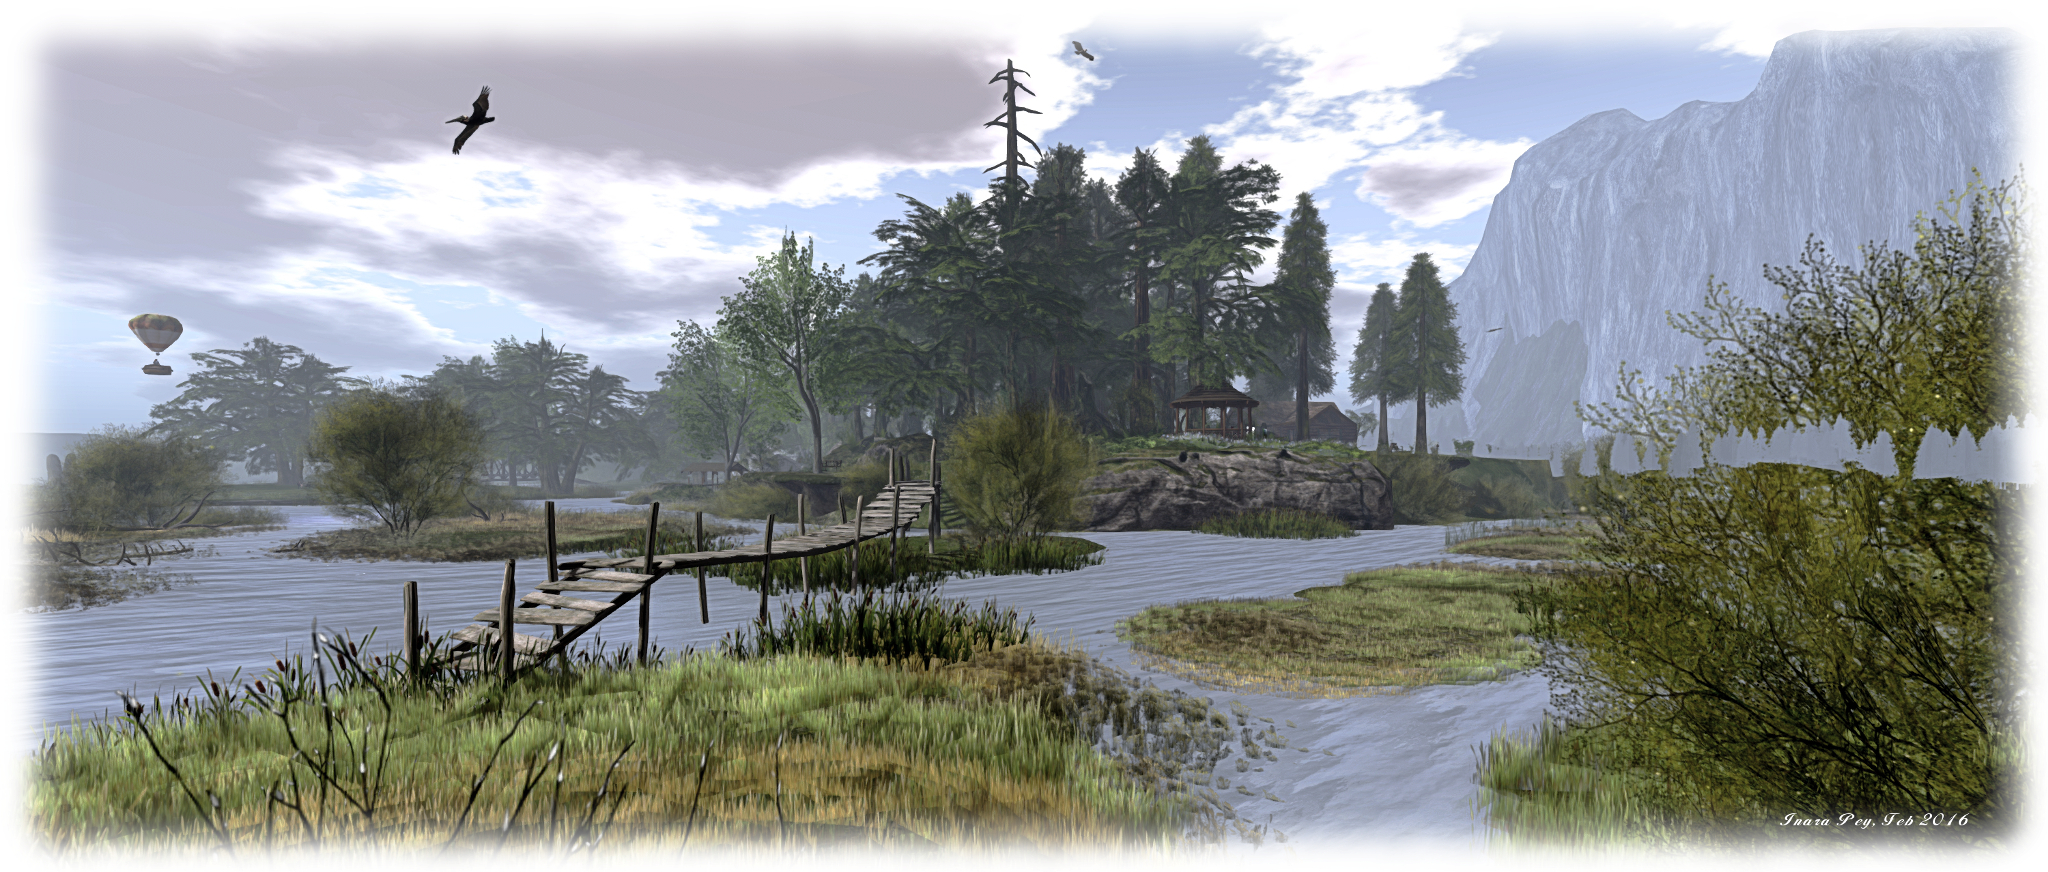 Calas Galadhon; Inara Pey, Feb 2016, on Flickr